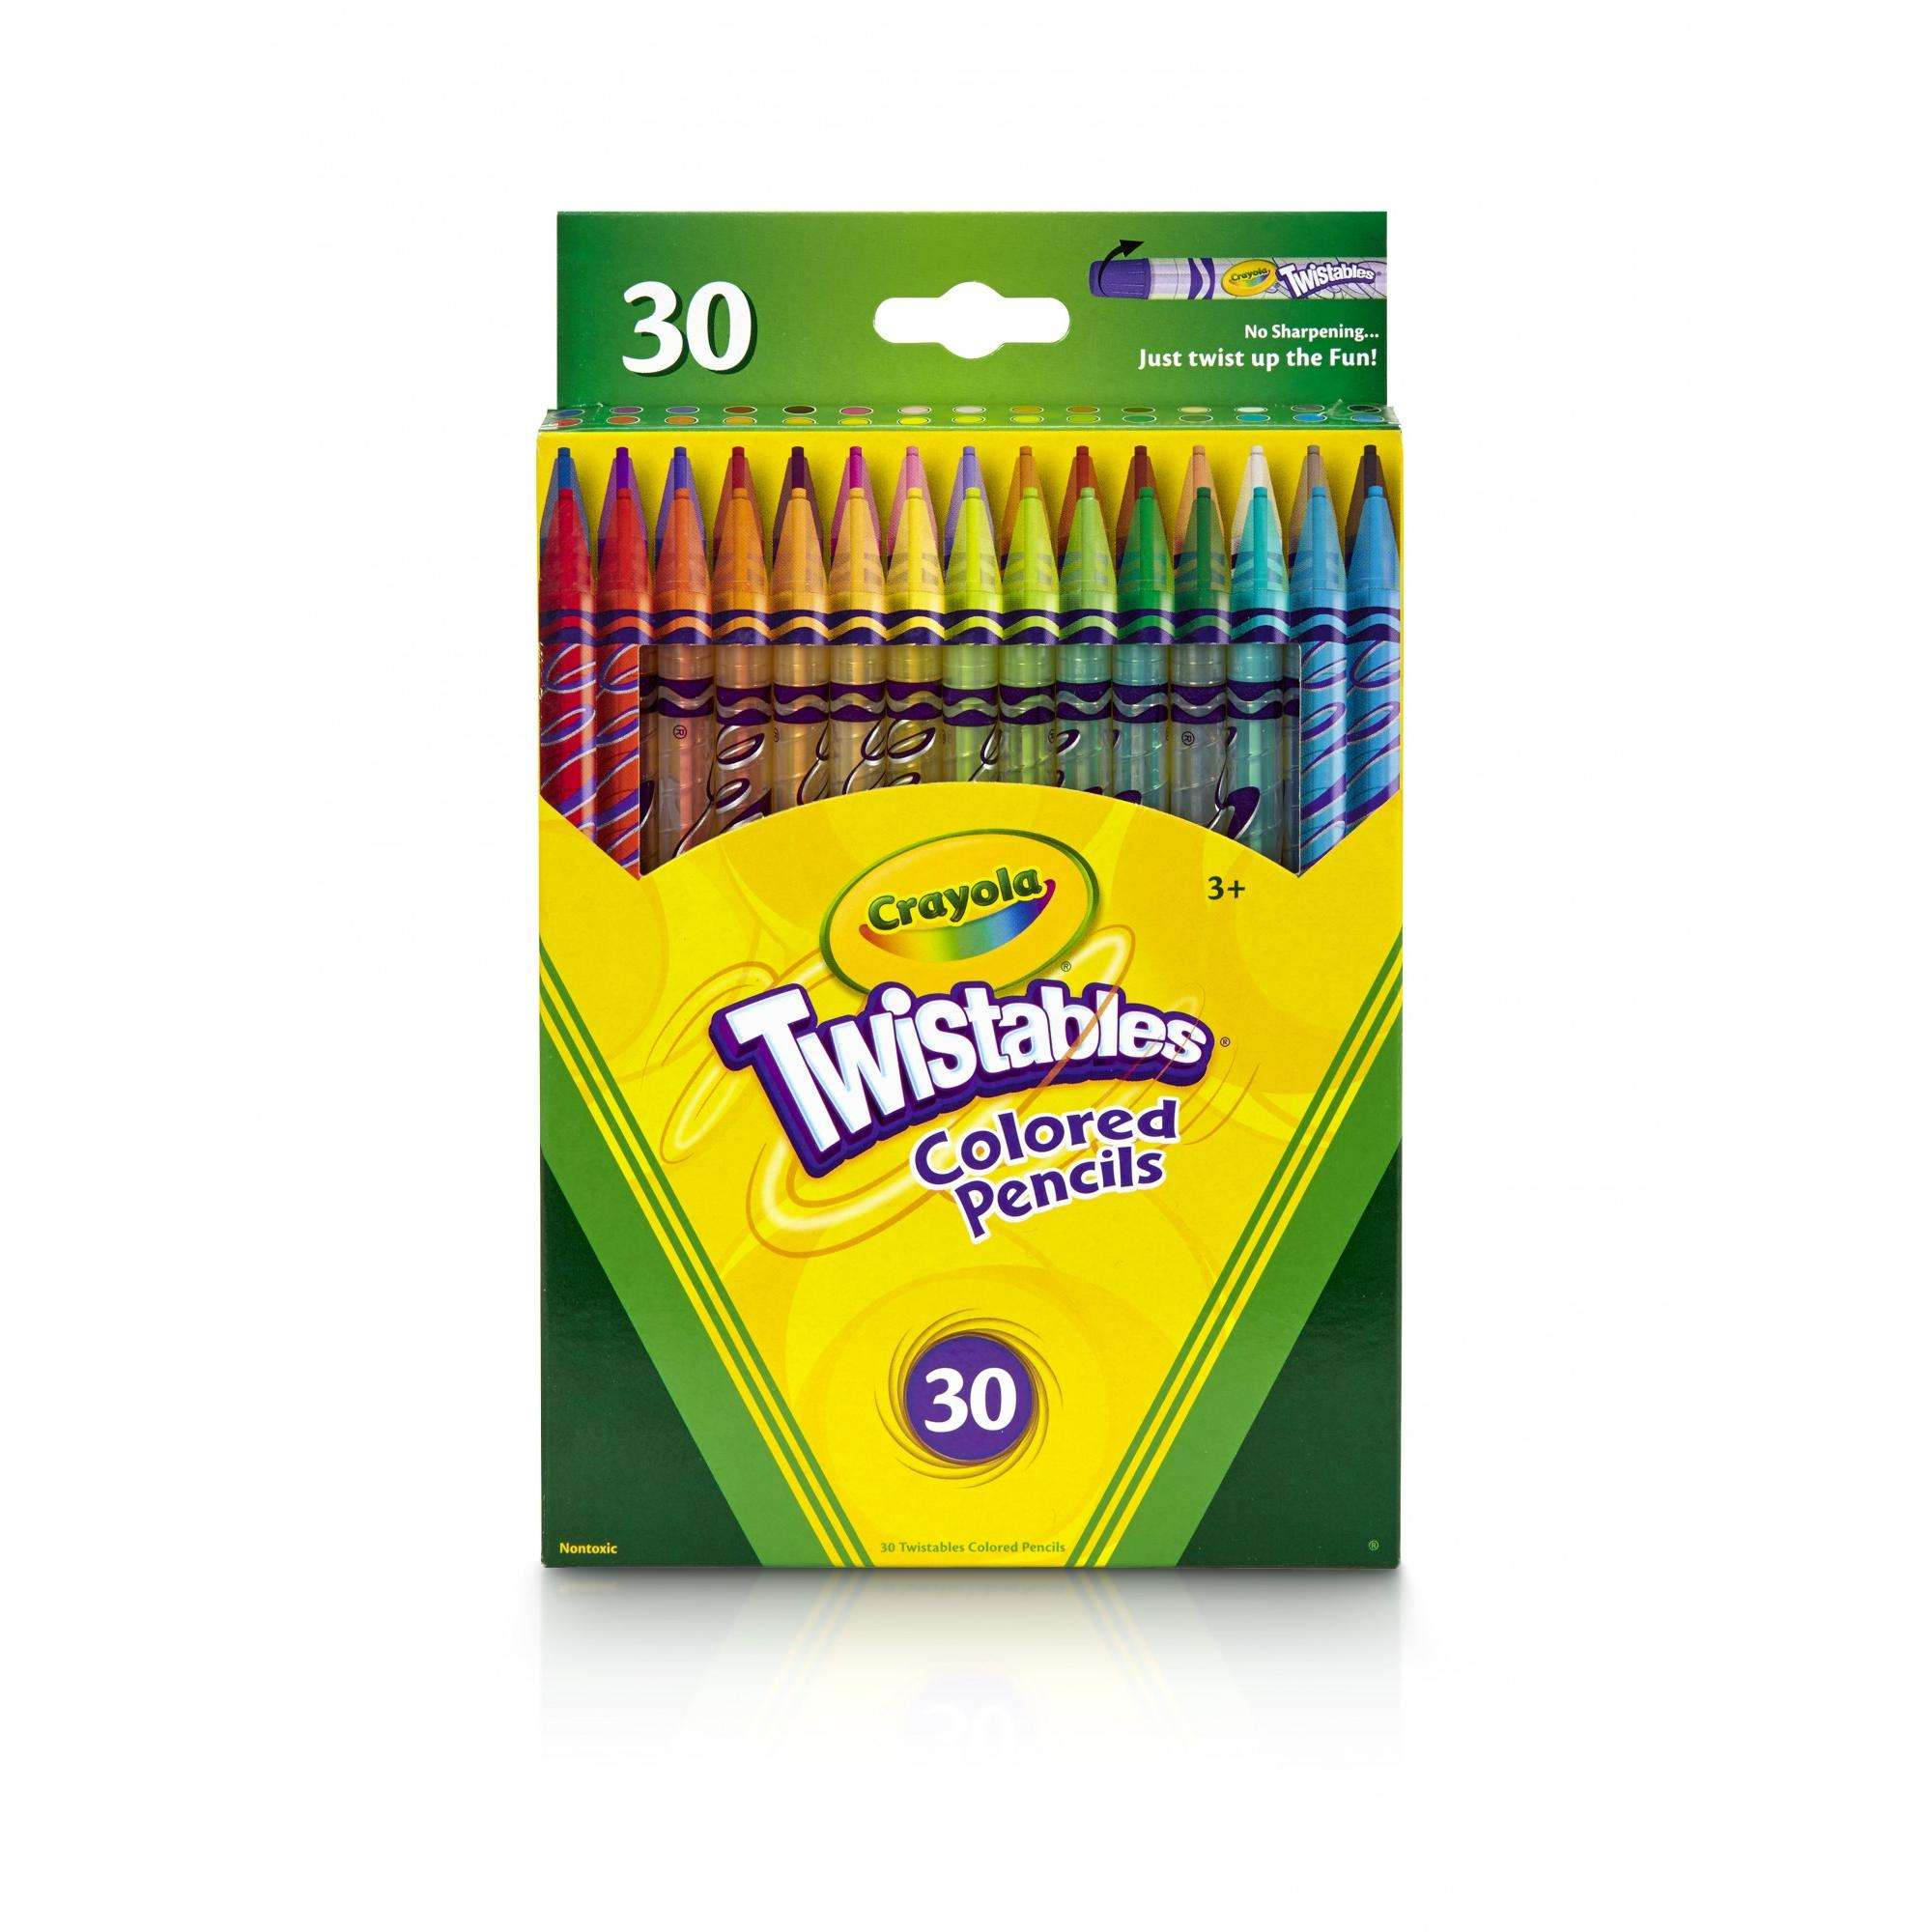 Crayola Twistables Colored Pencil Set, 30 Count